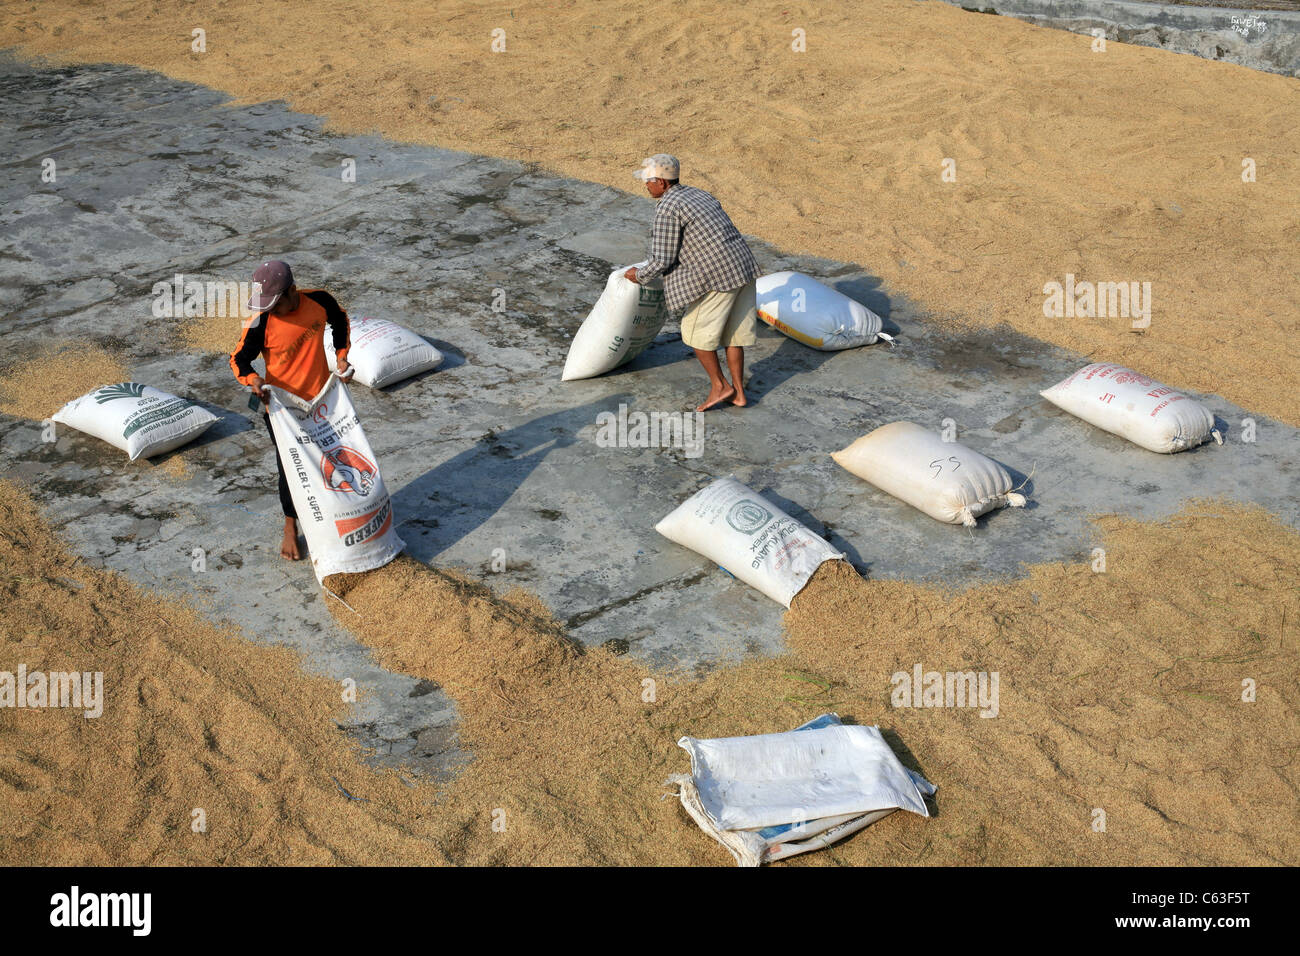 Men laying out sacks of harvested rice to dry in the sun at Cimaja - Stock Image